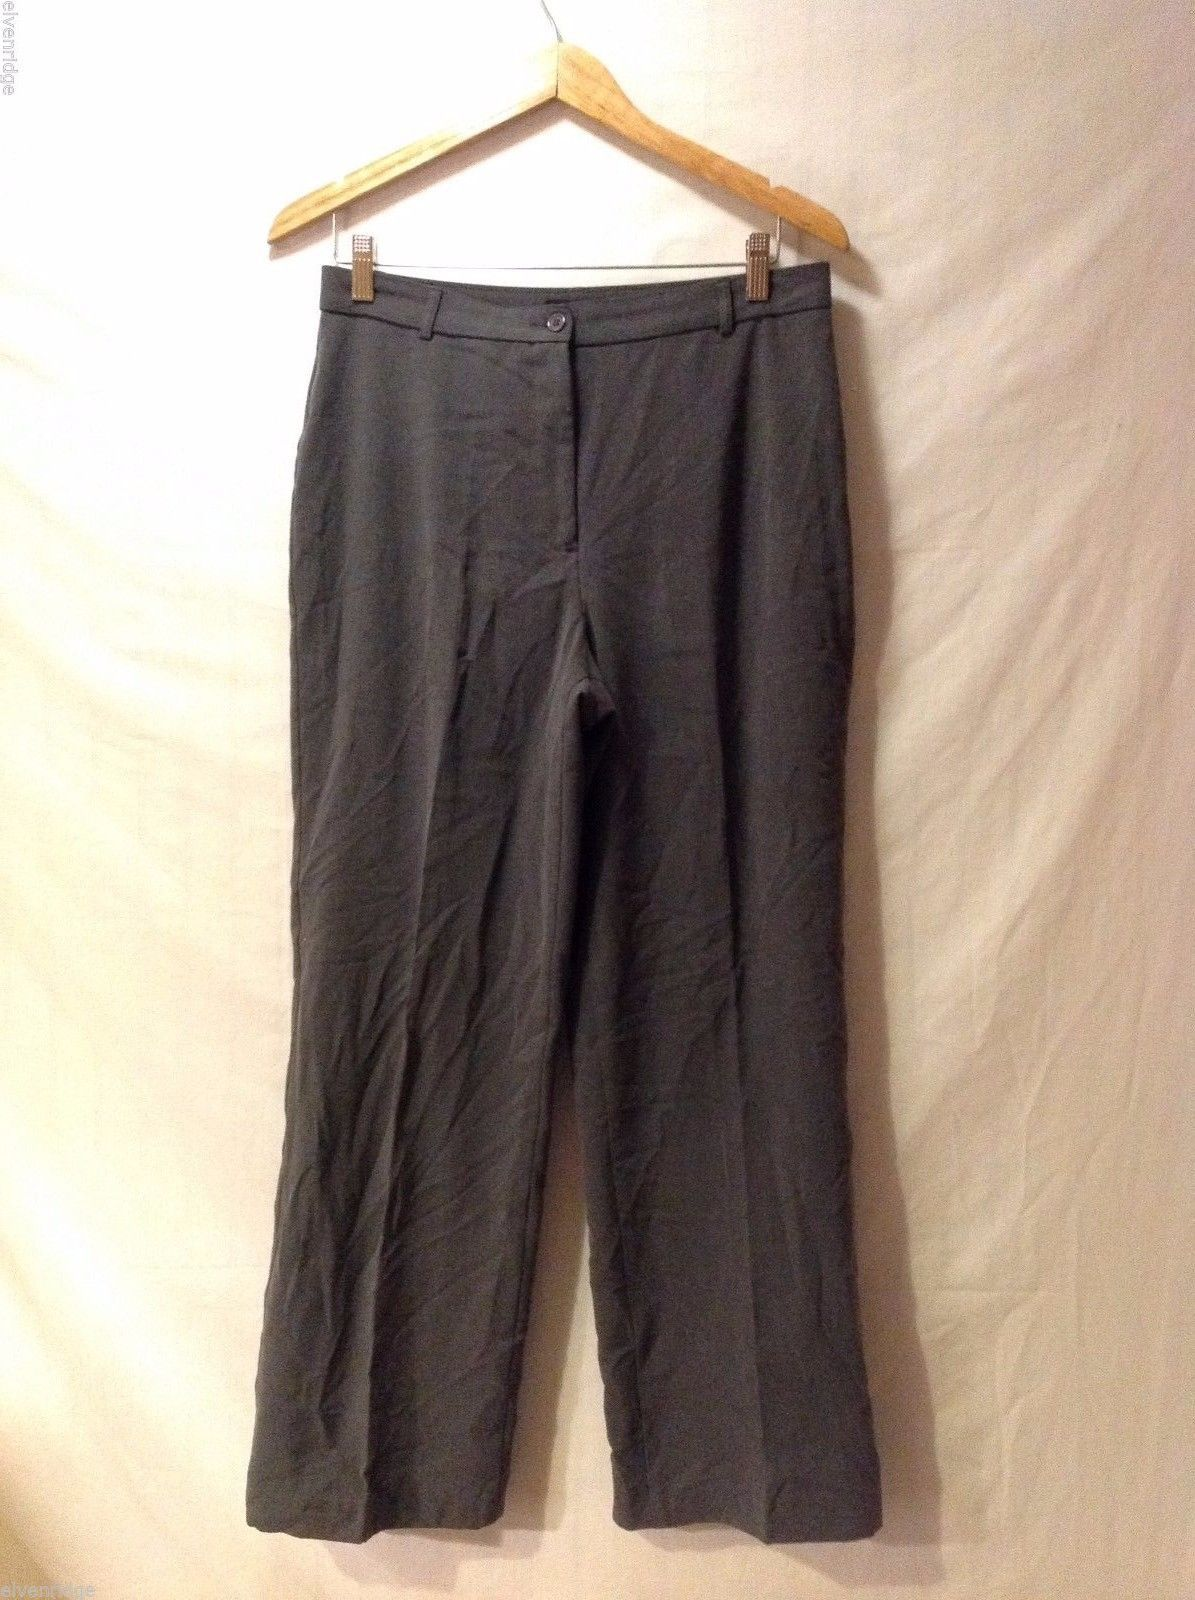 East 5th Secretly Slender Womens Gray Dress Pants, Size 10